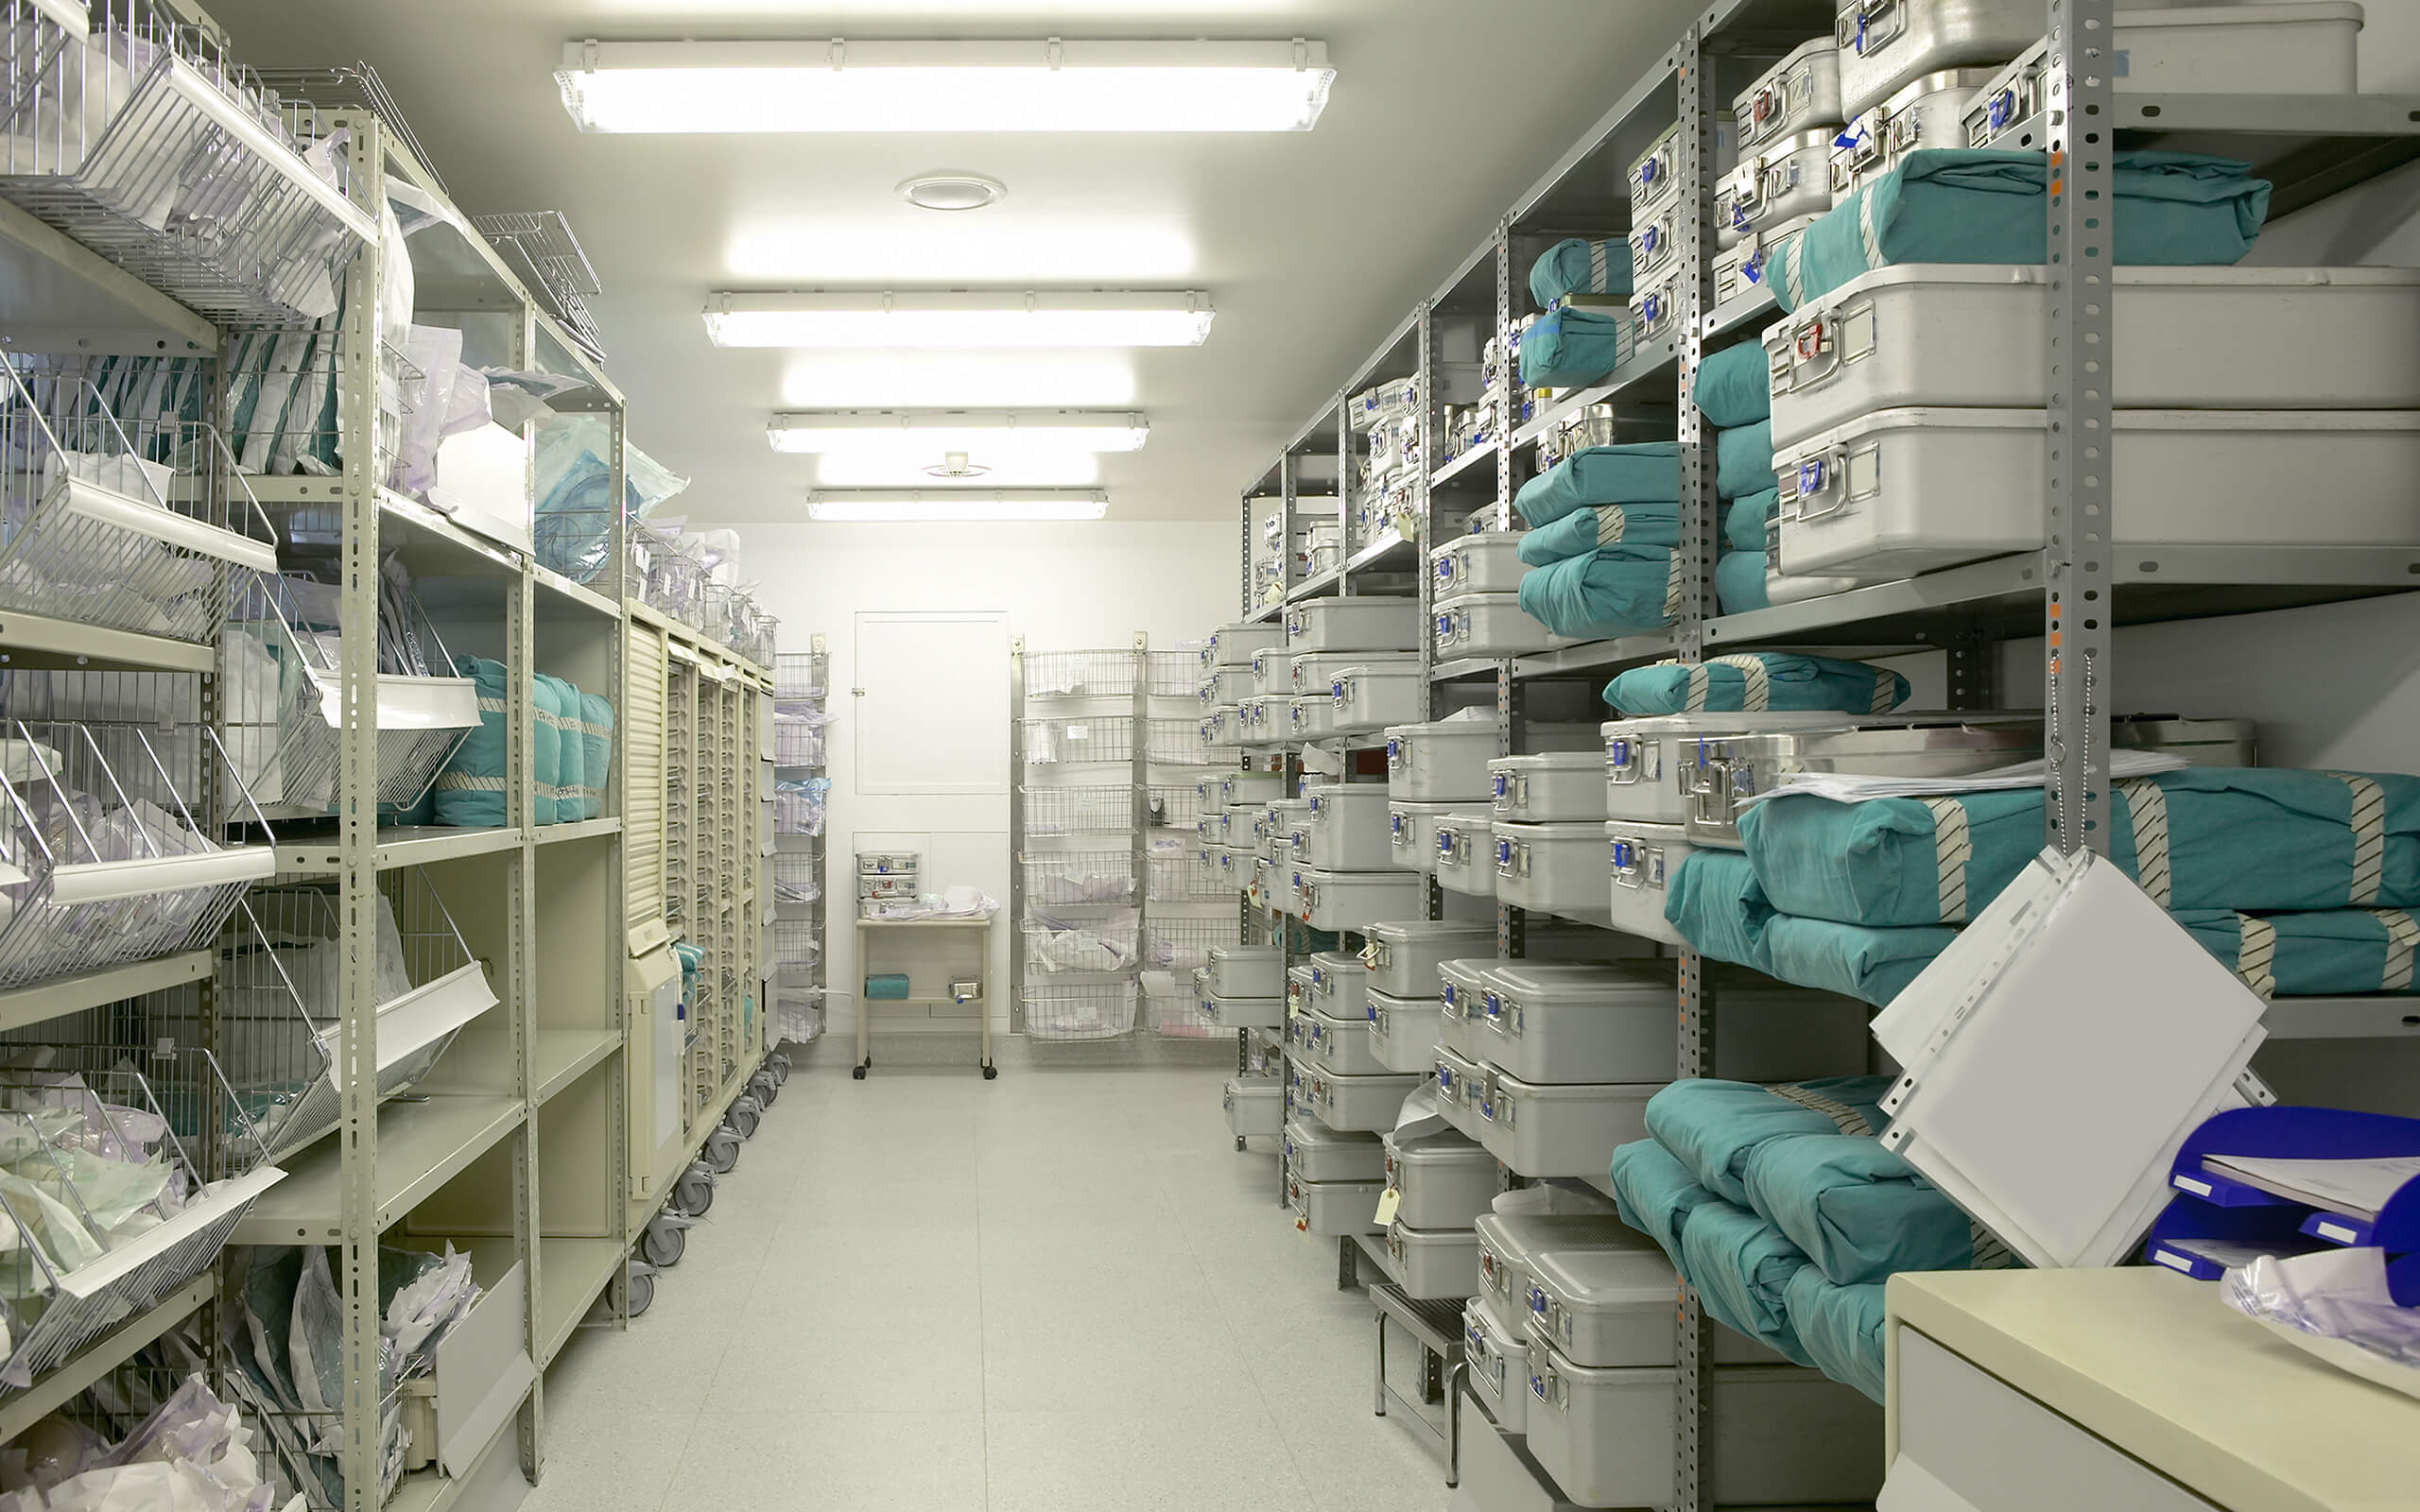 a hospital store room